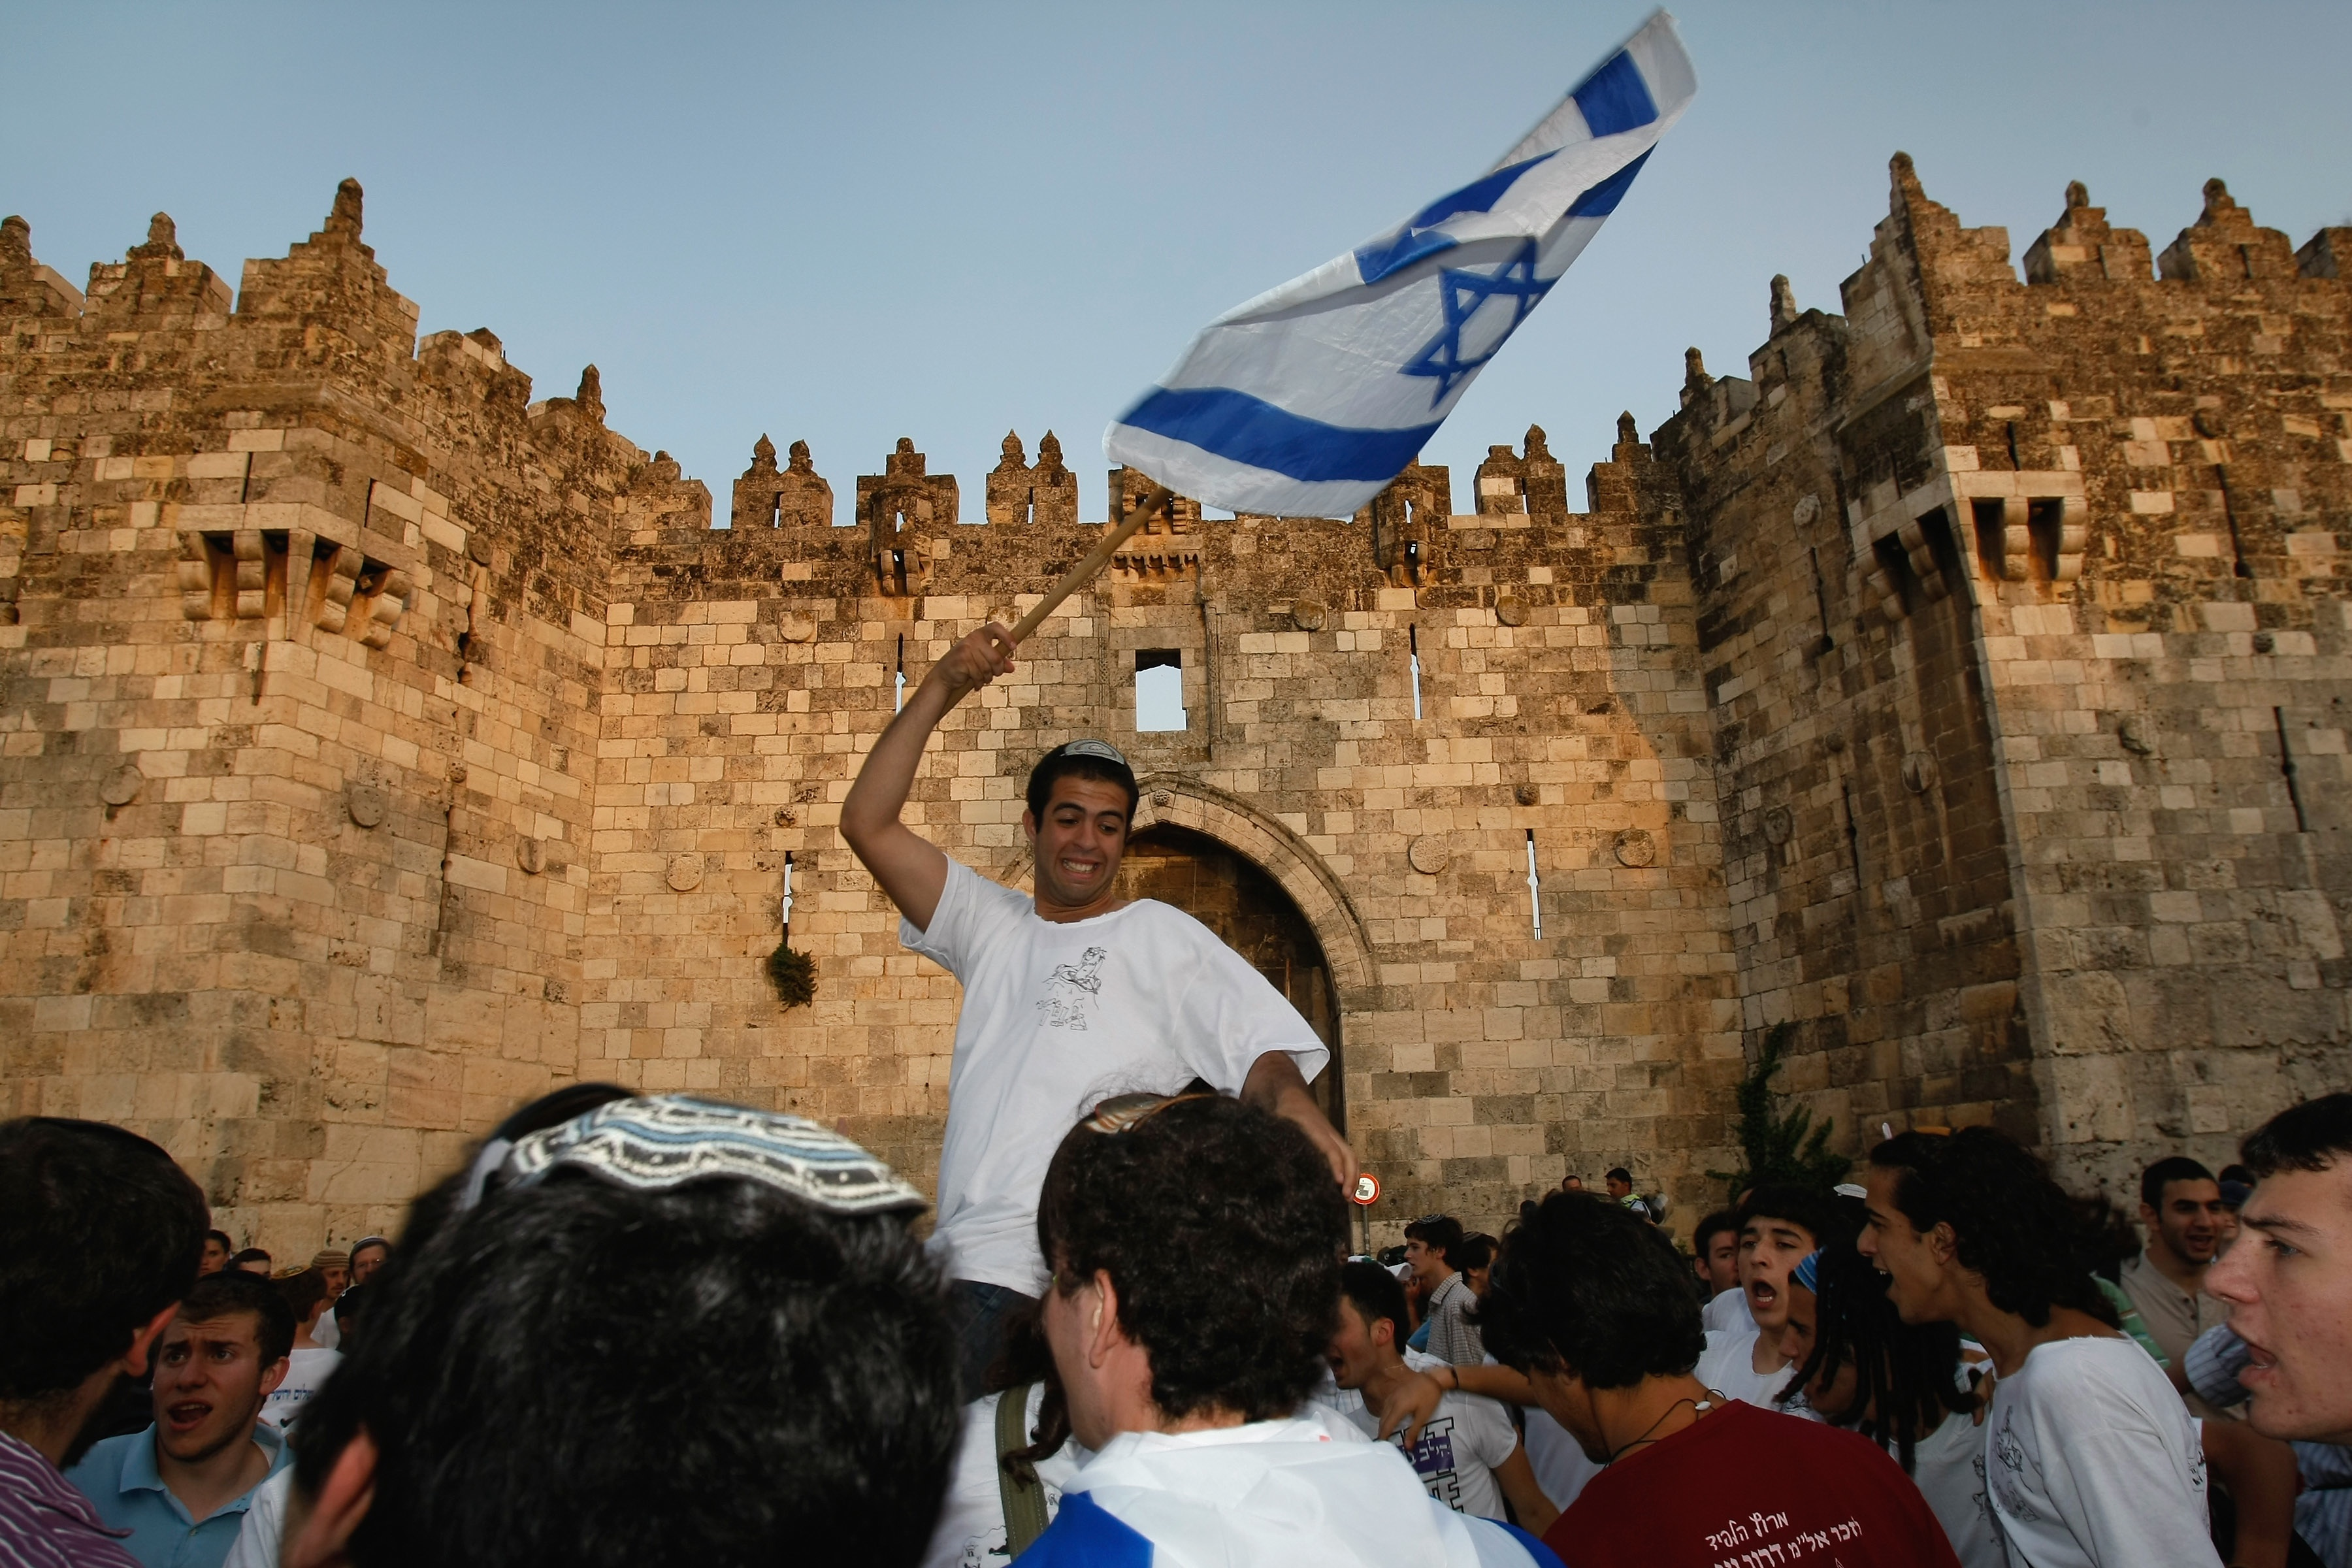 David Silverman/Getty Images. Right-wing religious Israelis dance with their national flag outside the Damascus gate of the Old City on May 21, 2009 in Jerusalem, Israel. Thousands of national religious Jews paraded past the US Consulate towards the Old City and the Western Wall in celebration of Jerusalem Day, the anniversary according to the Hebrew calendar of the city's liberation from Jordanian forces during the 1967 Six Day War.